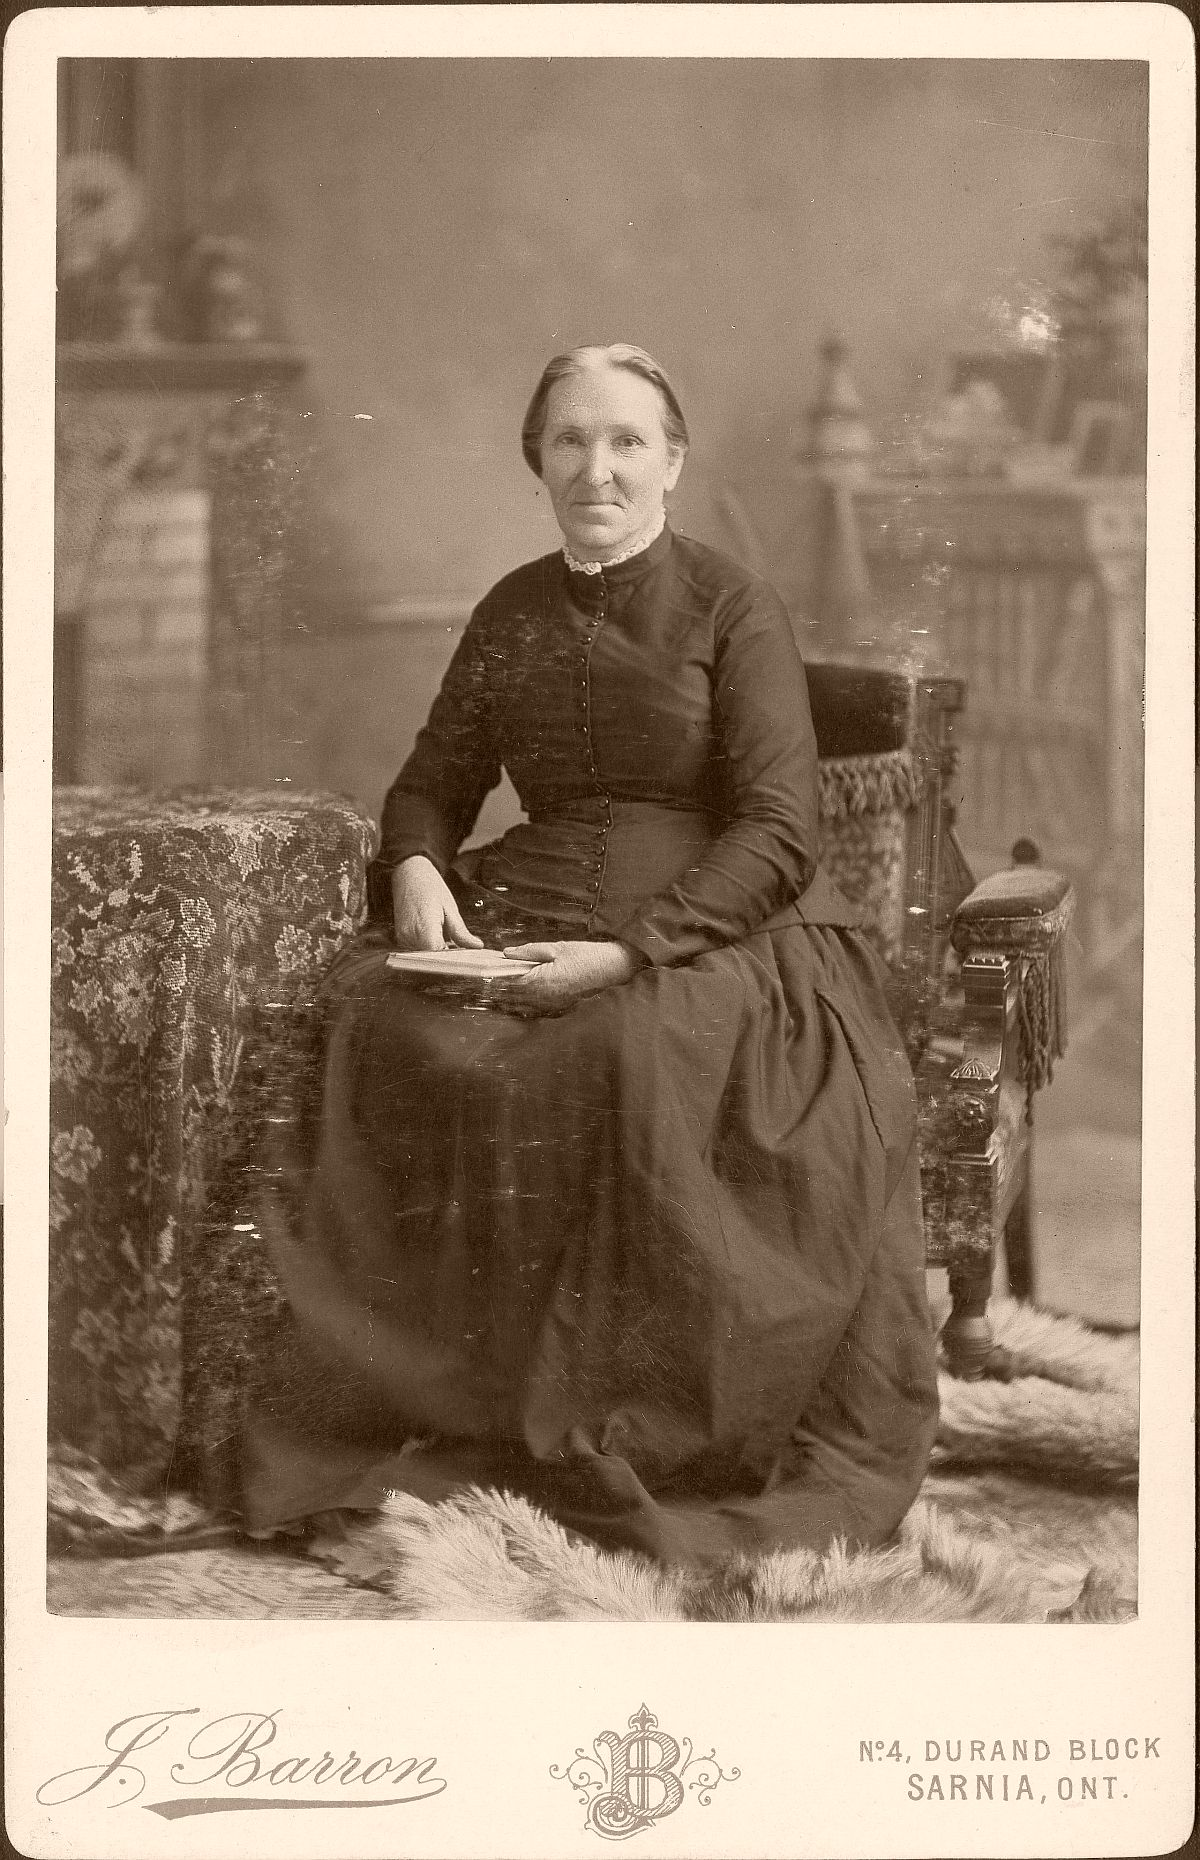 cabinet-cards-1870s-to-1880s-vintage-19th-century-victorian-era-02